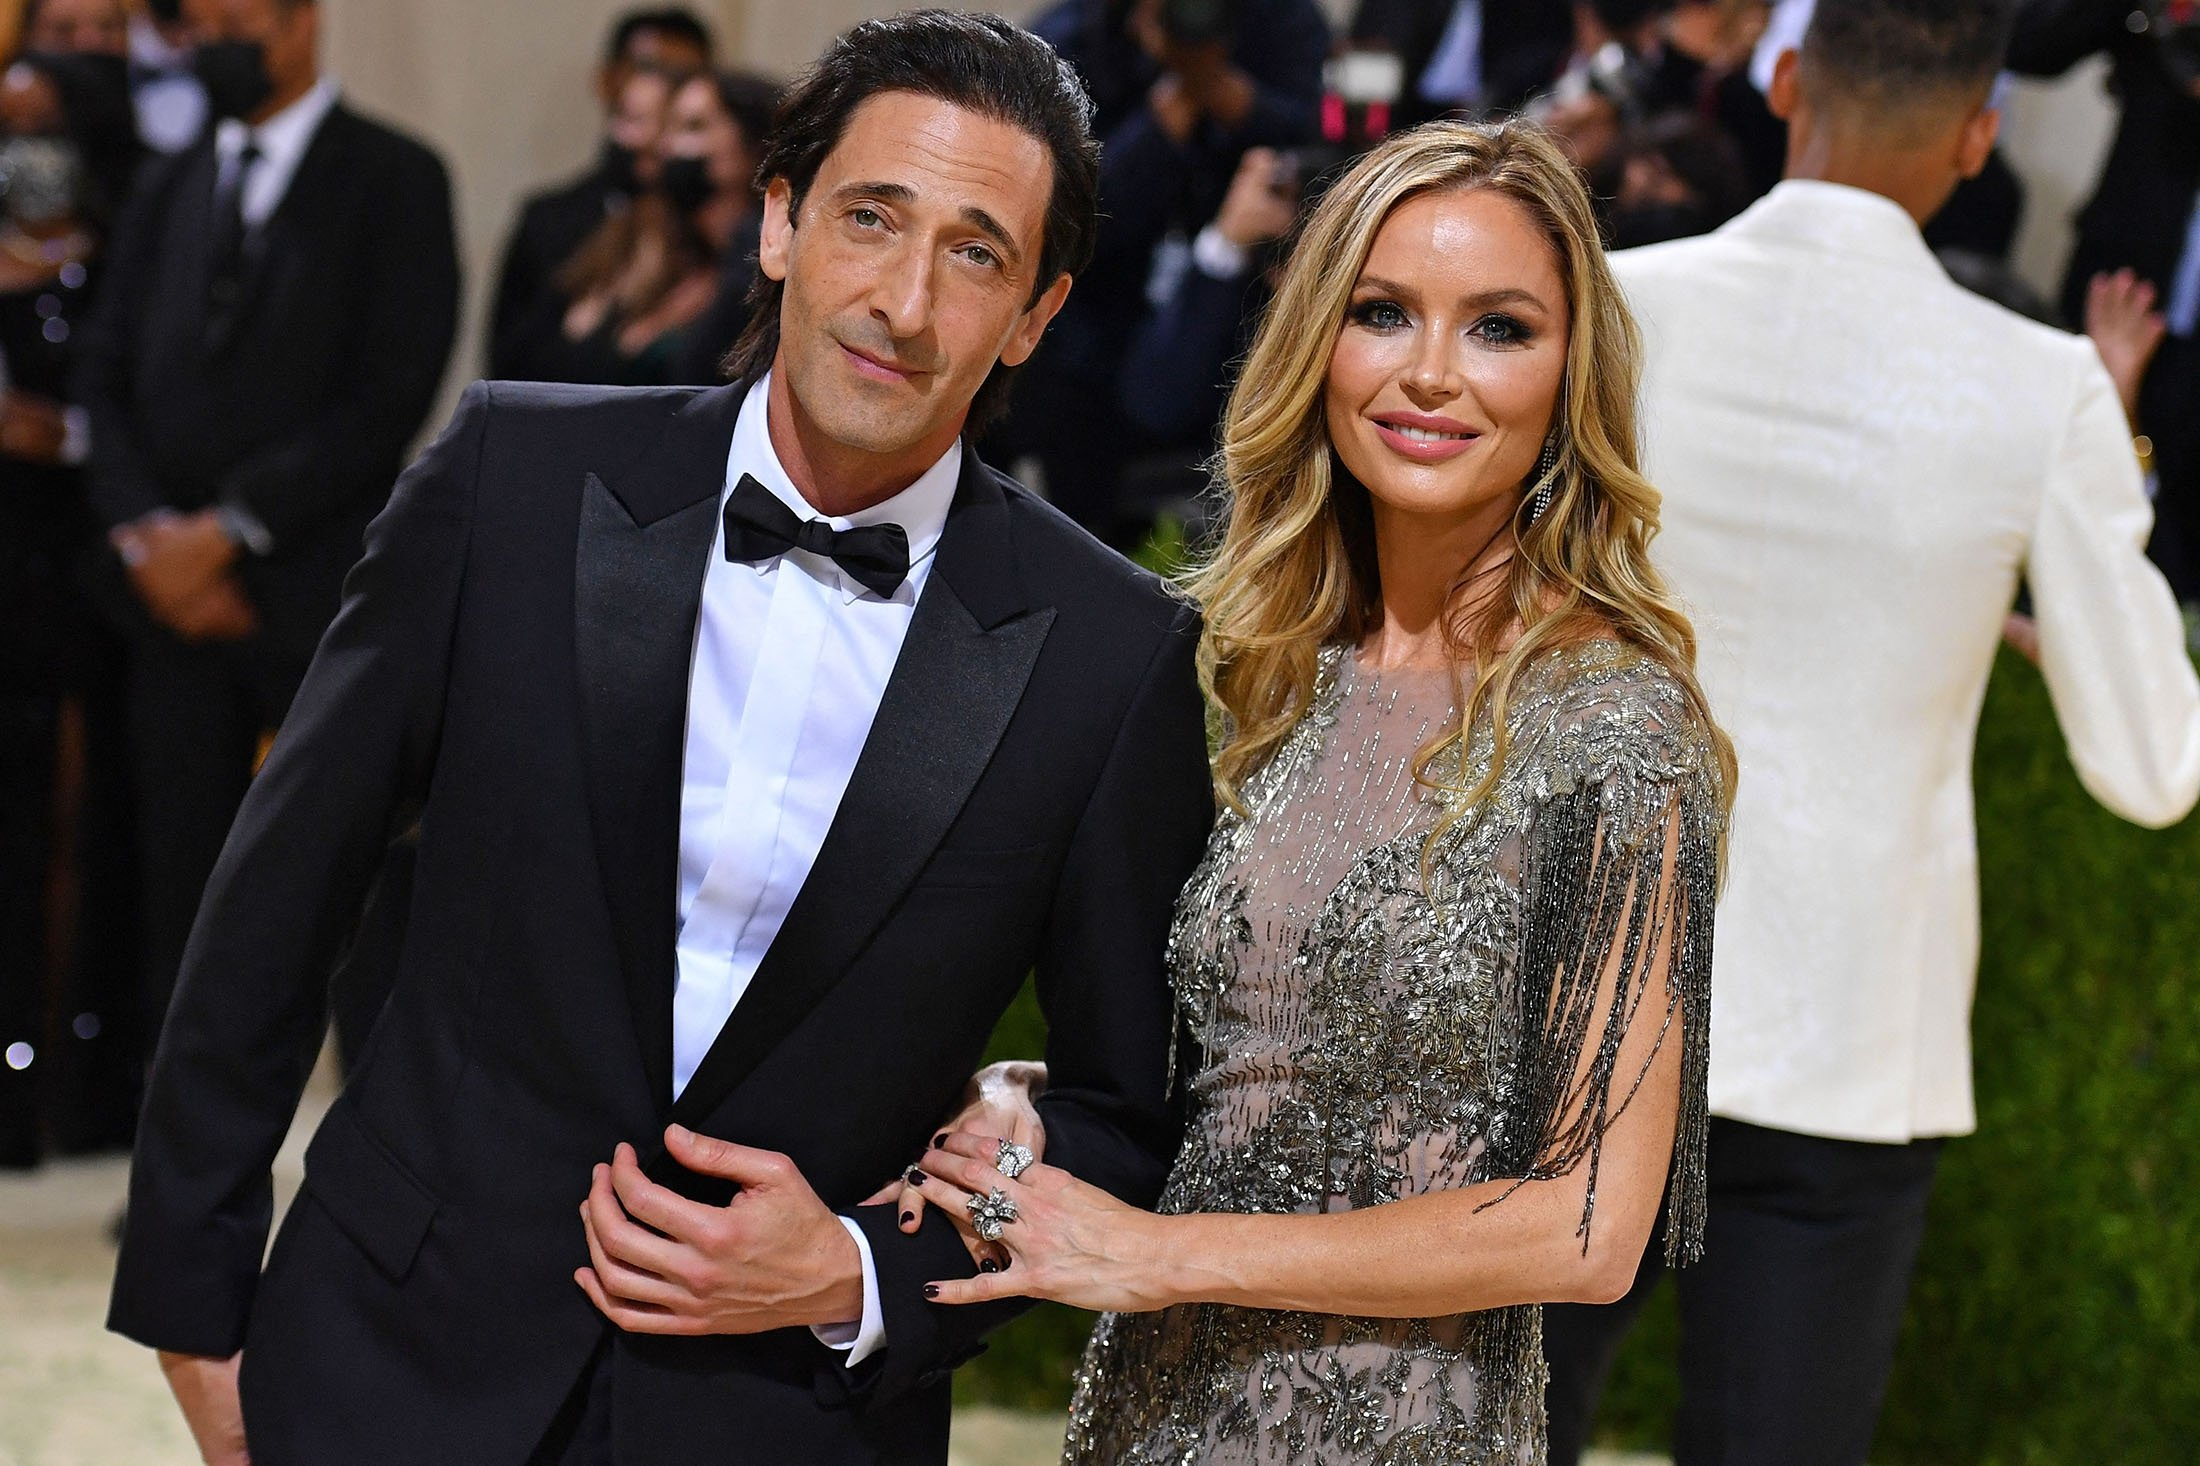 American actor Adrien Brody (L) and English fashion designer Georgina Chapman arrive for the 2021 Met Gala at the Metropolitan Museum of Art, in New York, U.S., Sept. 13, 2021. (AFP Photo)